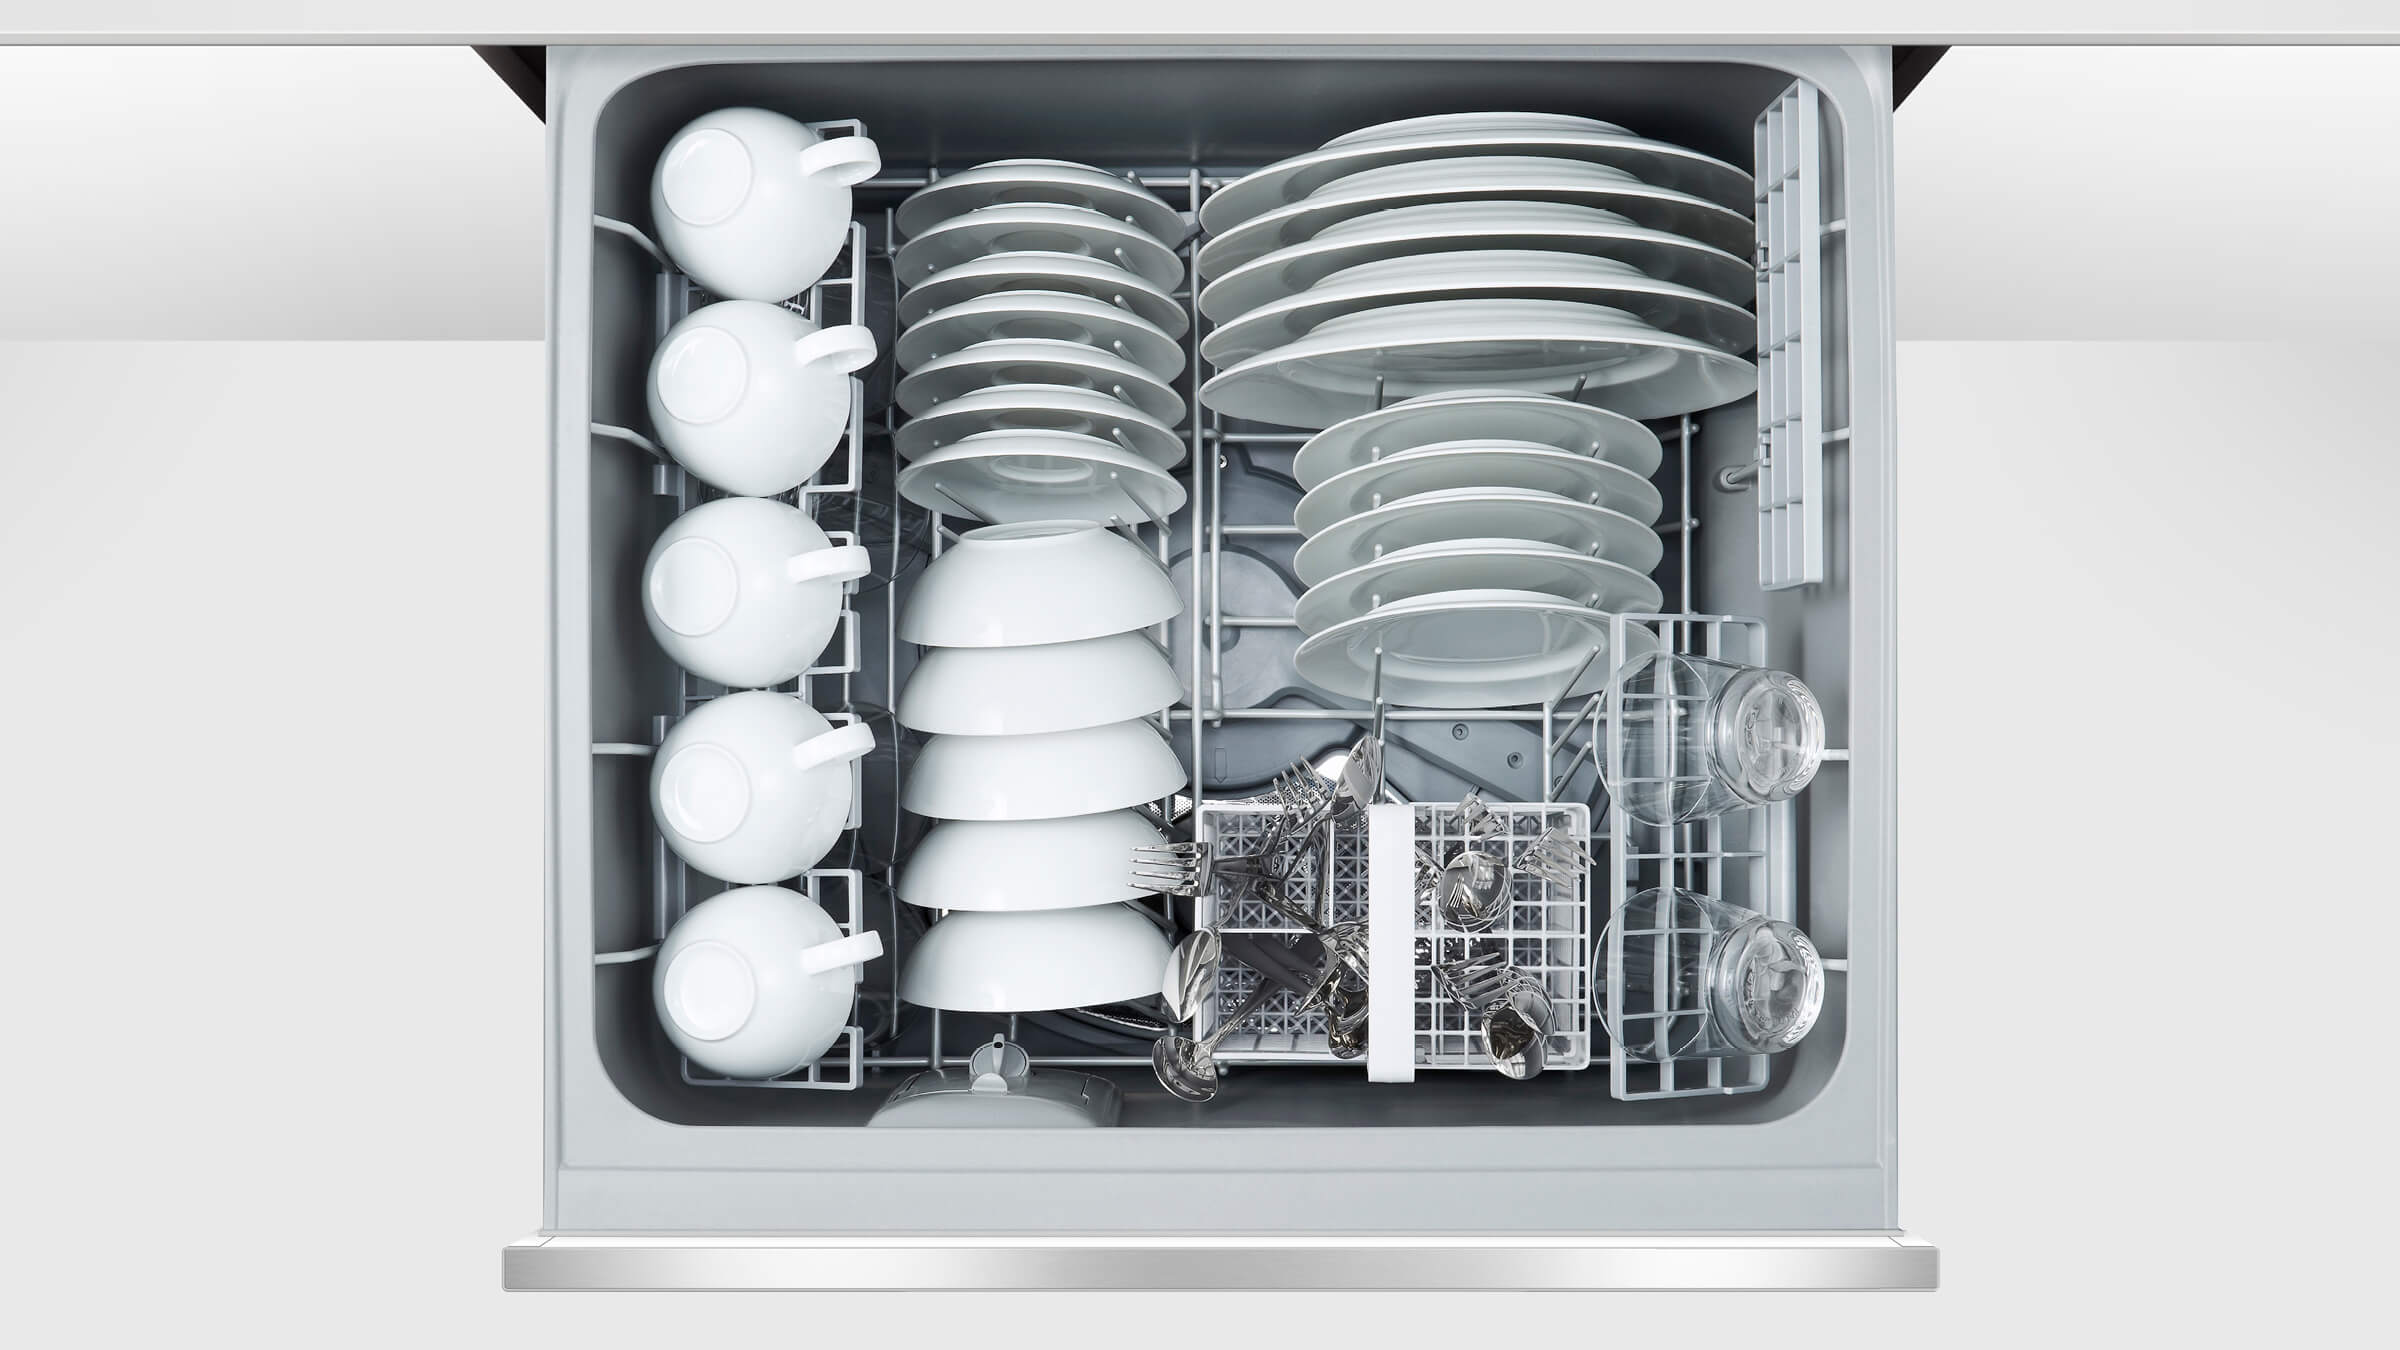 Tall Single DishDrawer dishwasher incl Sanitize, Extra Dry and full flex racking